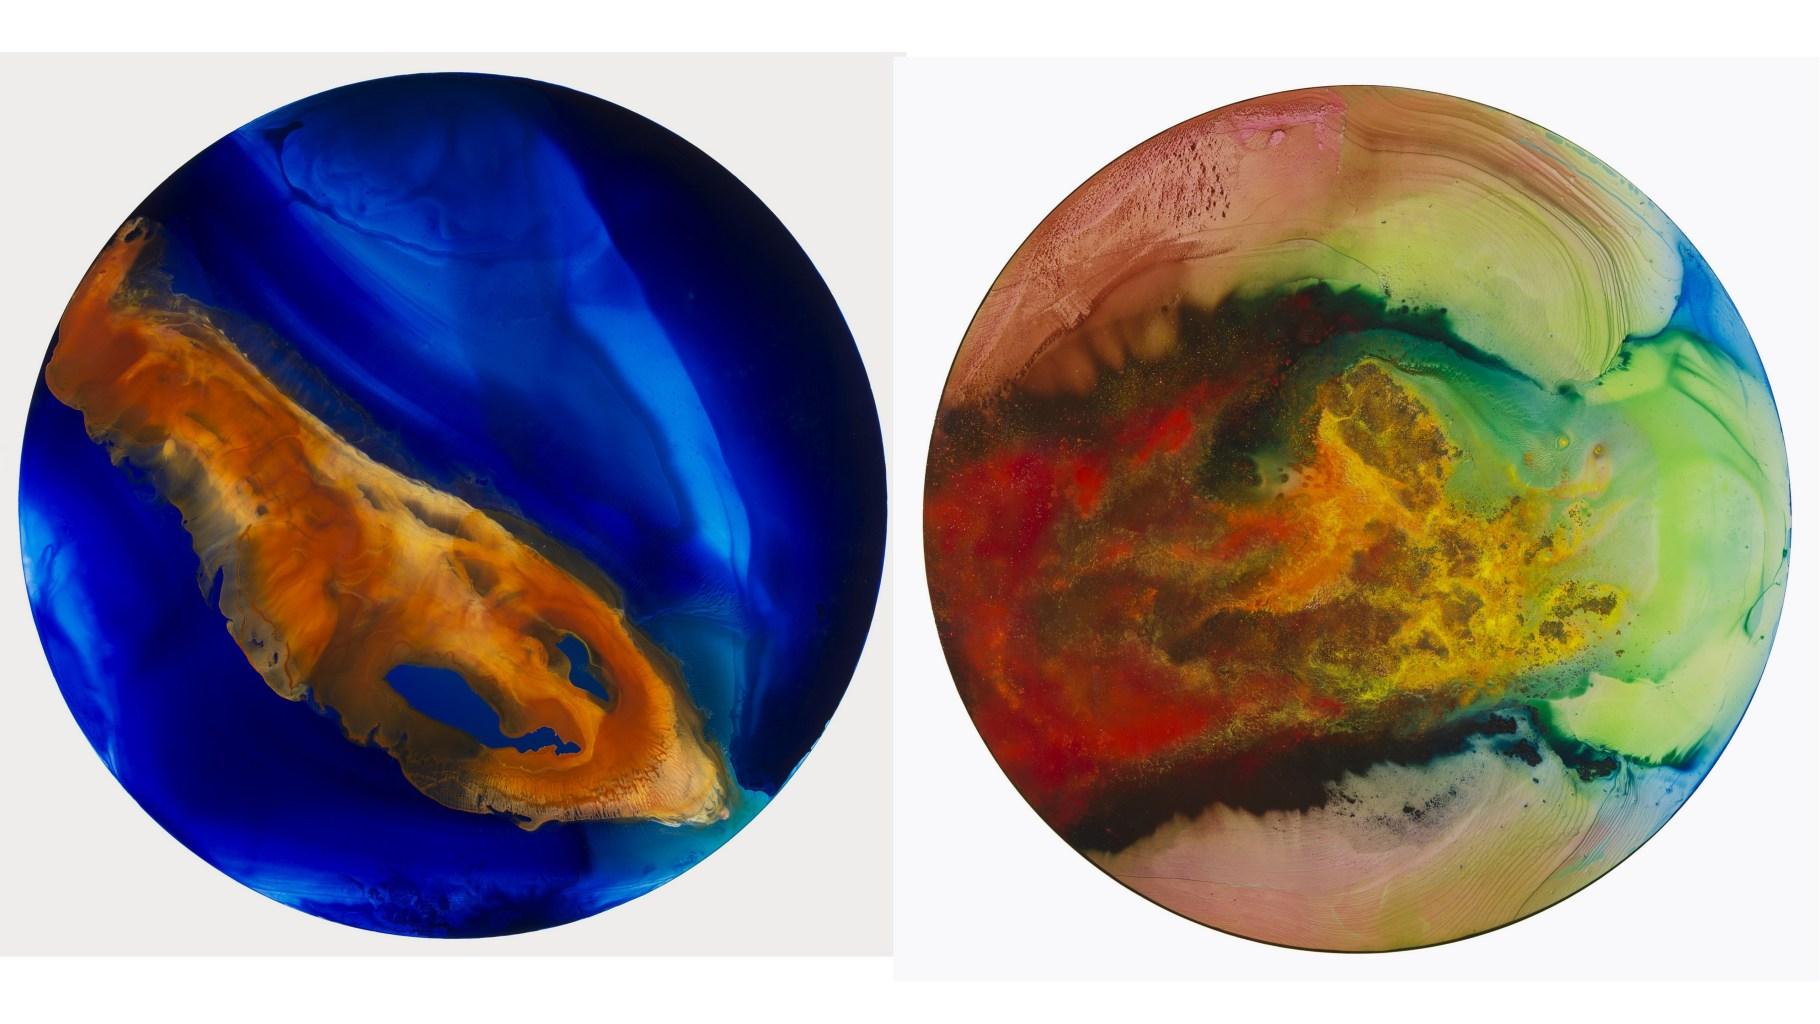 Image: Two round colorful, abstract images made by artist John Sabraw with points from Toxic waste